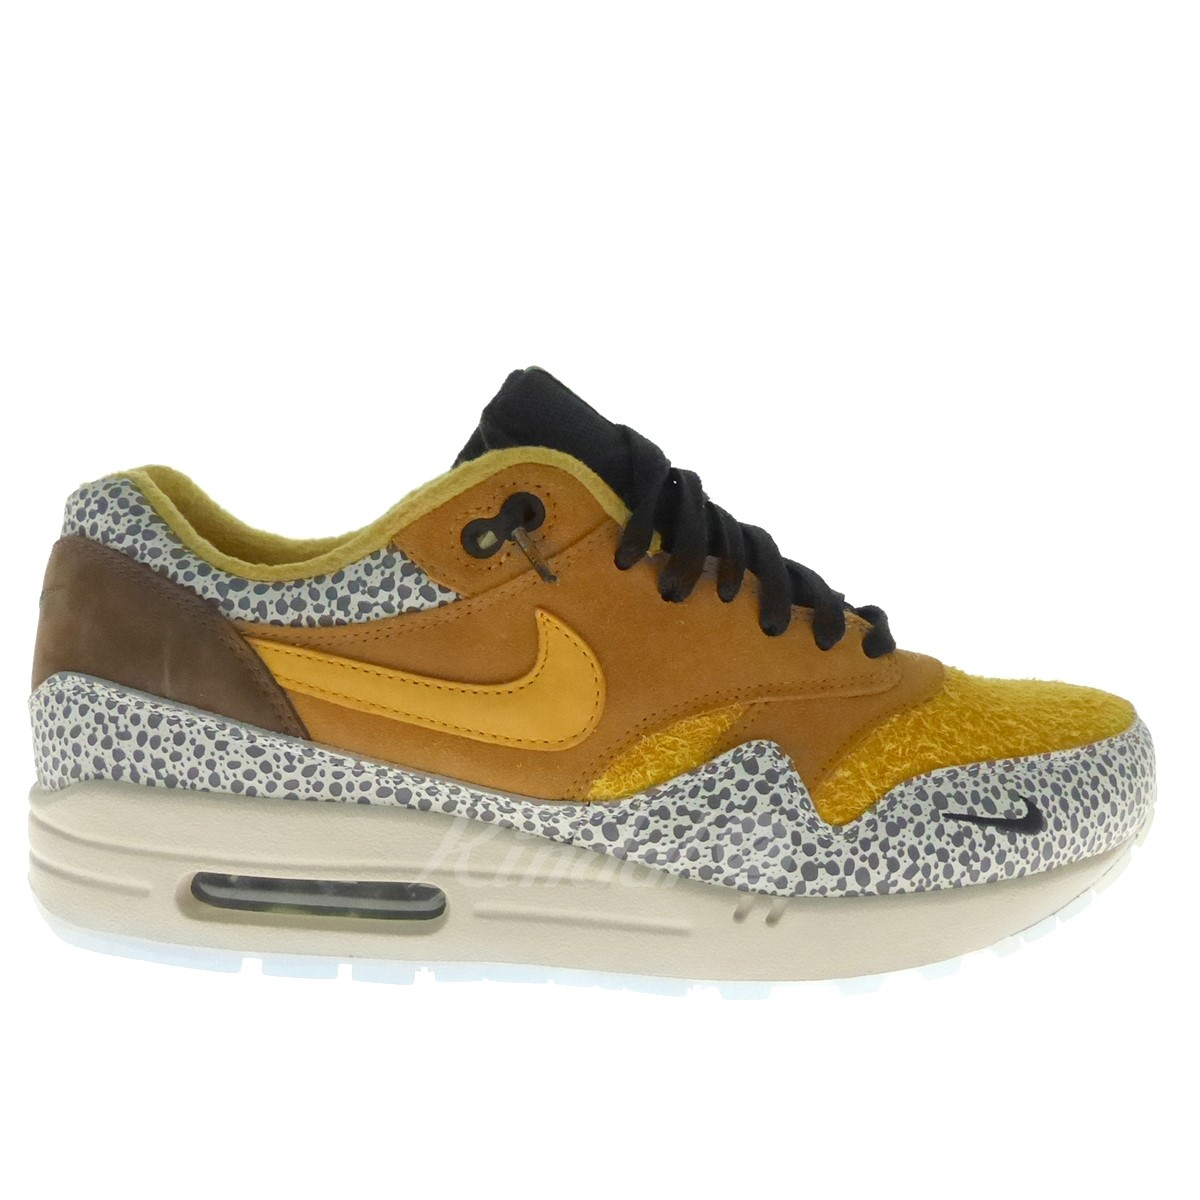 best loved 3753b 7c71a NIKE AIR MAX 1 PREMIUM QS sneakers 665,873-200 mustard size: 27 5cm